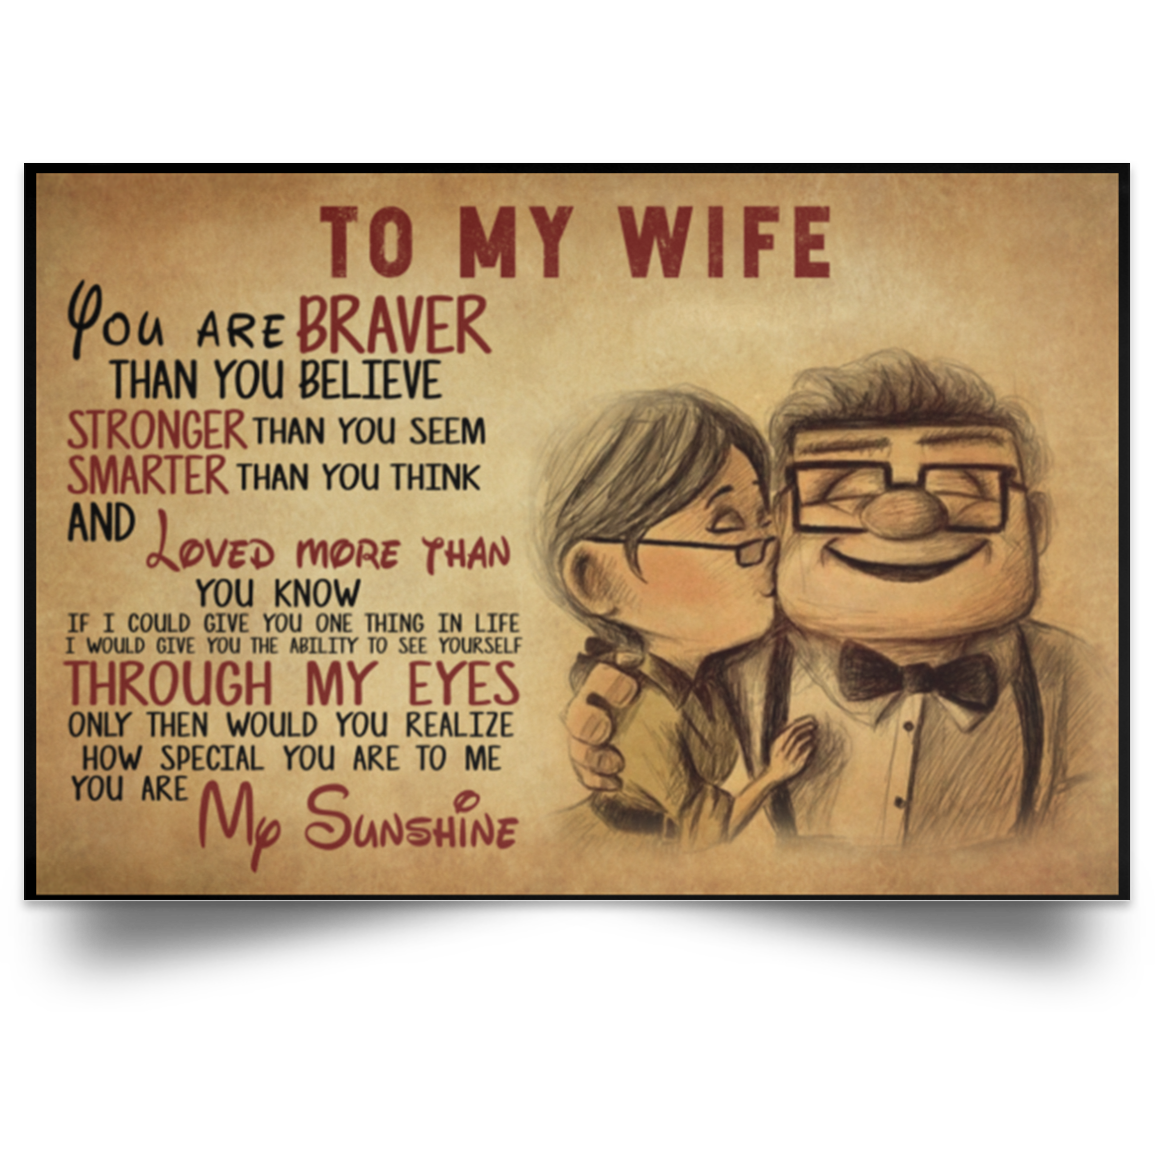 My wife is stronger than me  Dear Cancer, My Wife Is